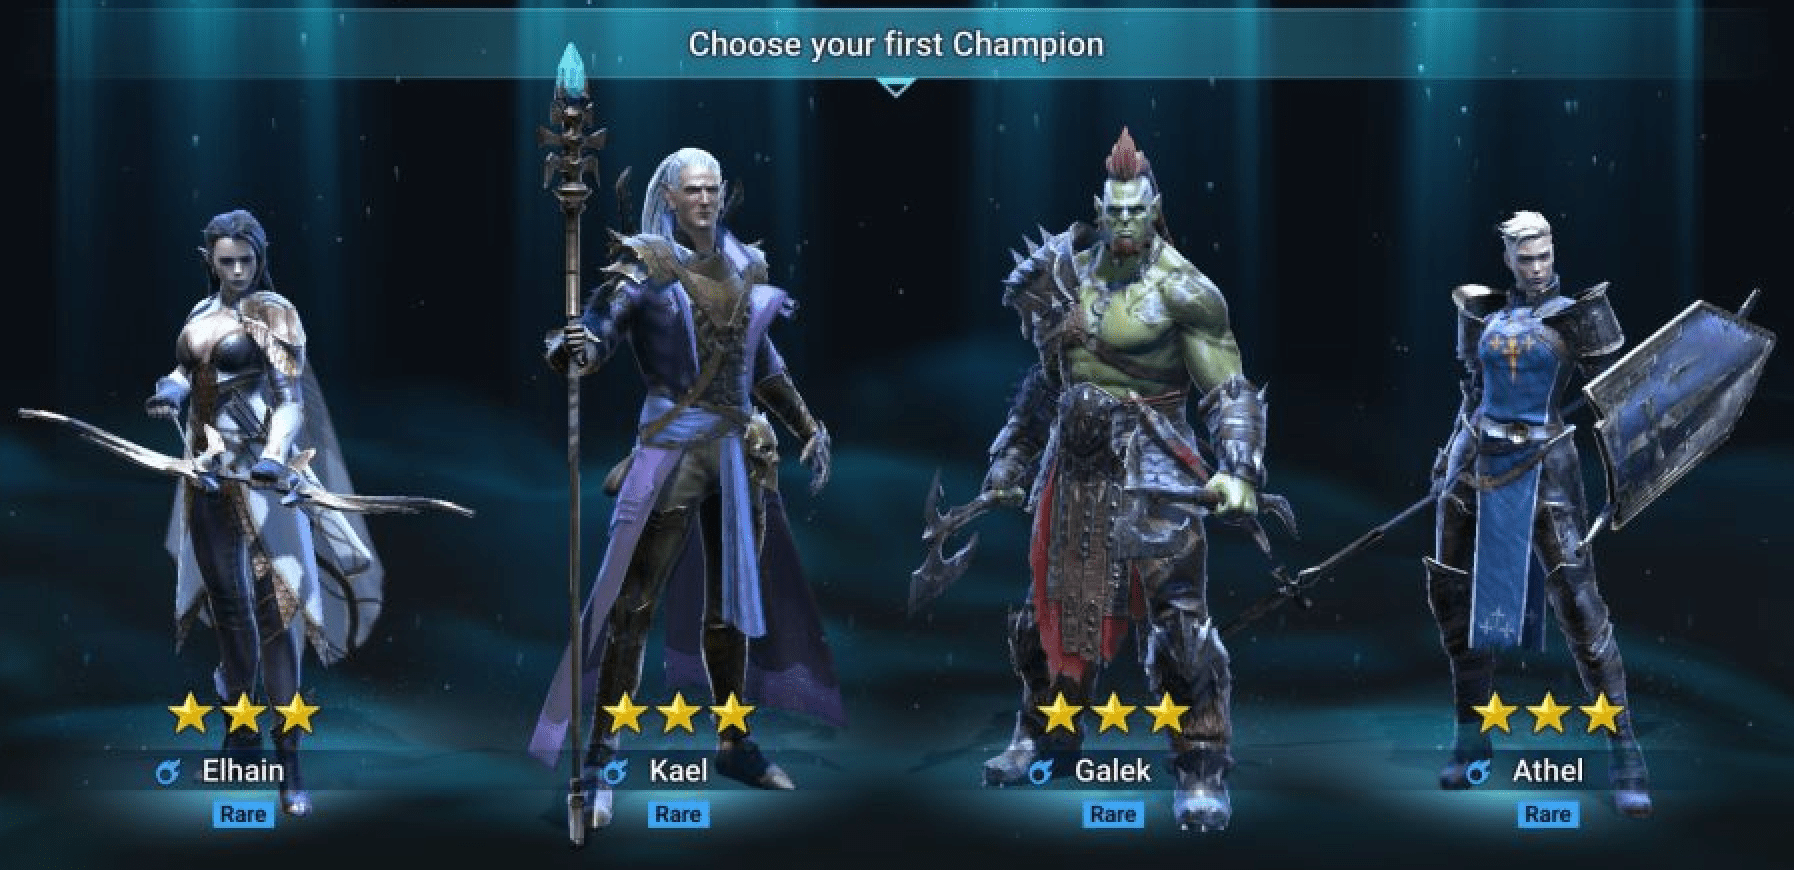 How to pick your start champions?